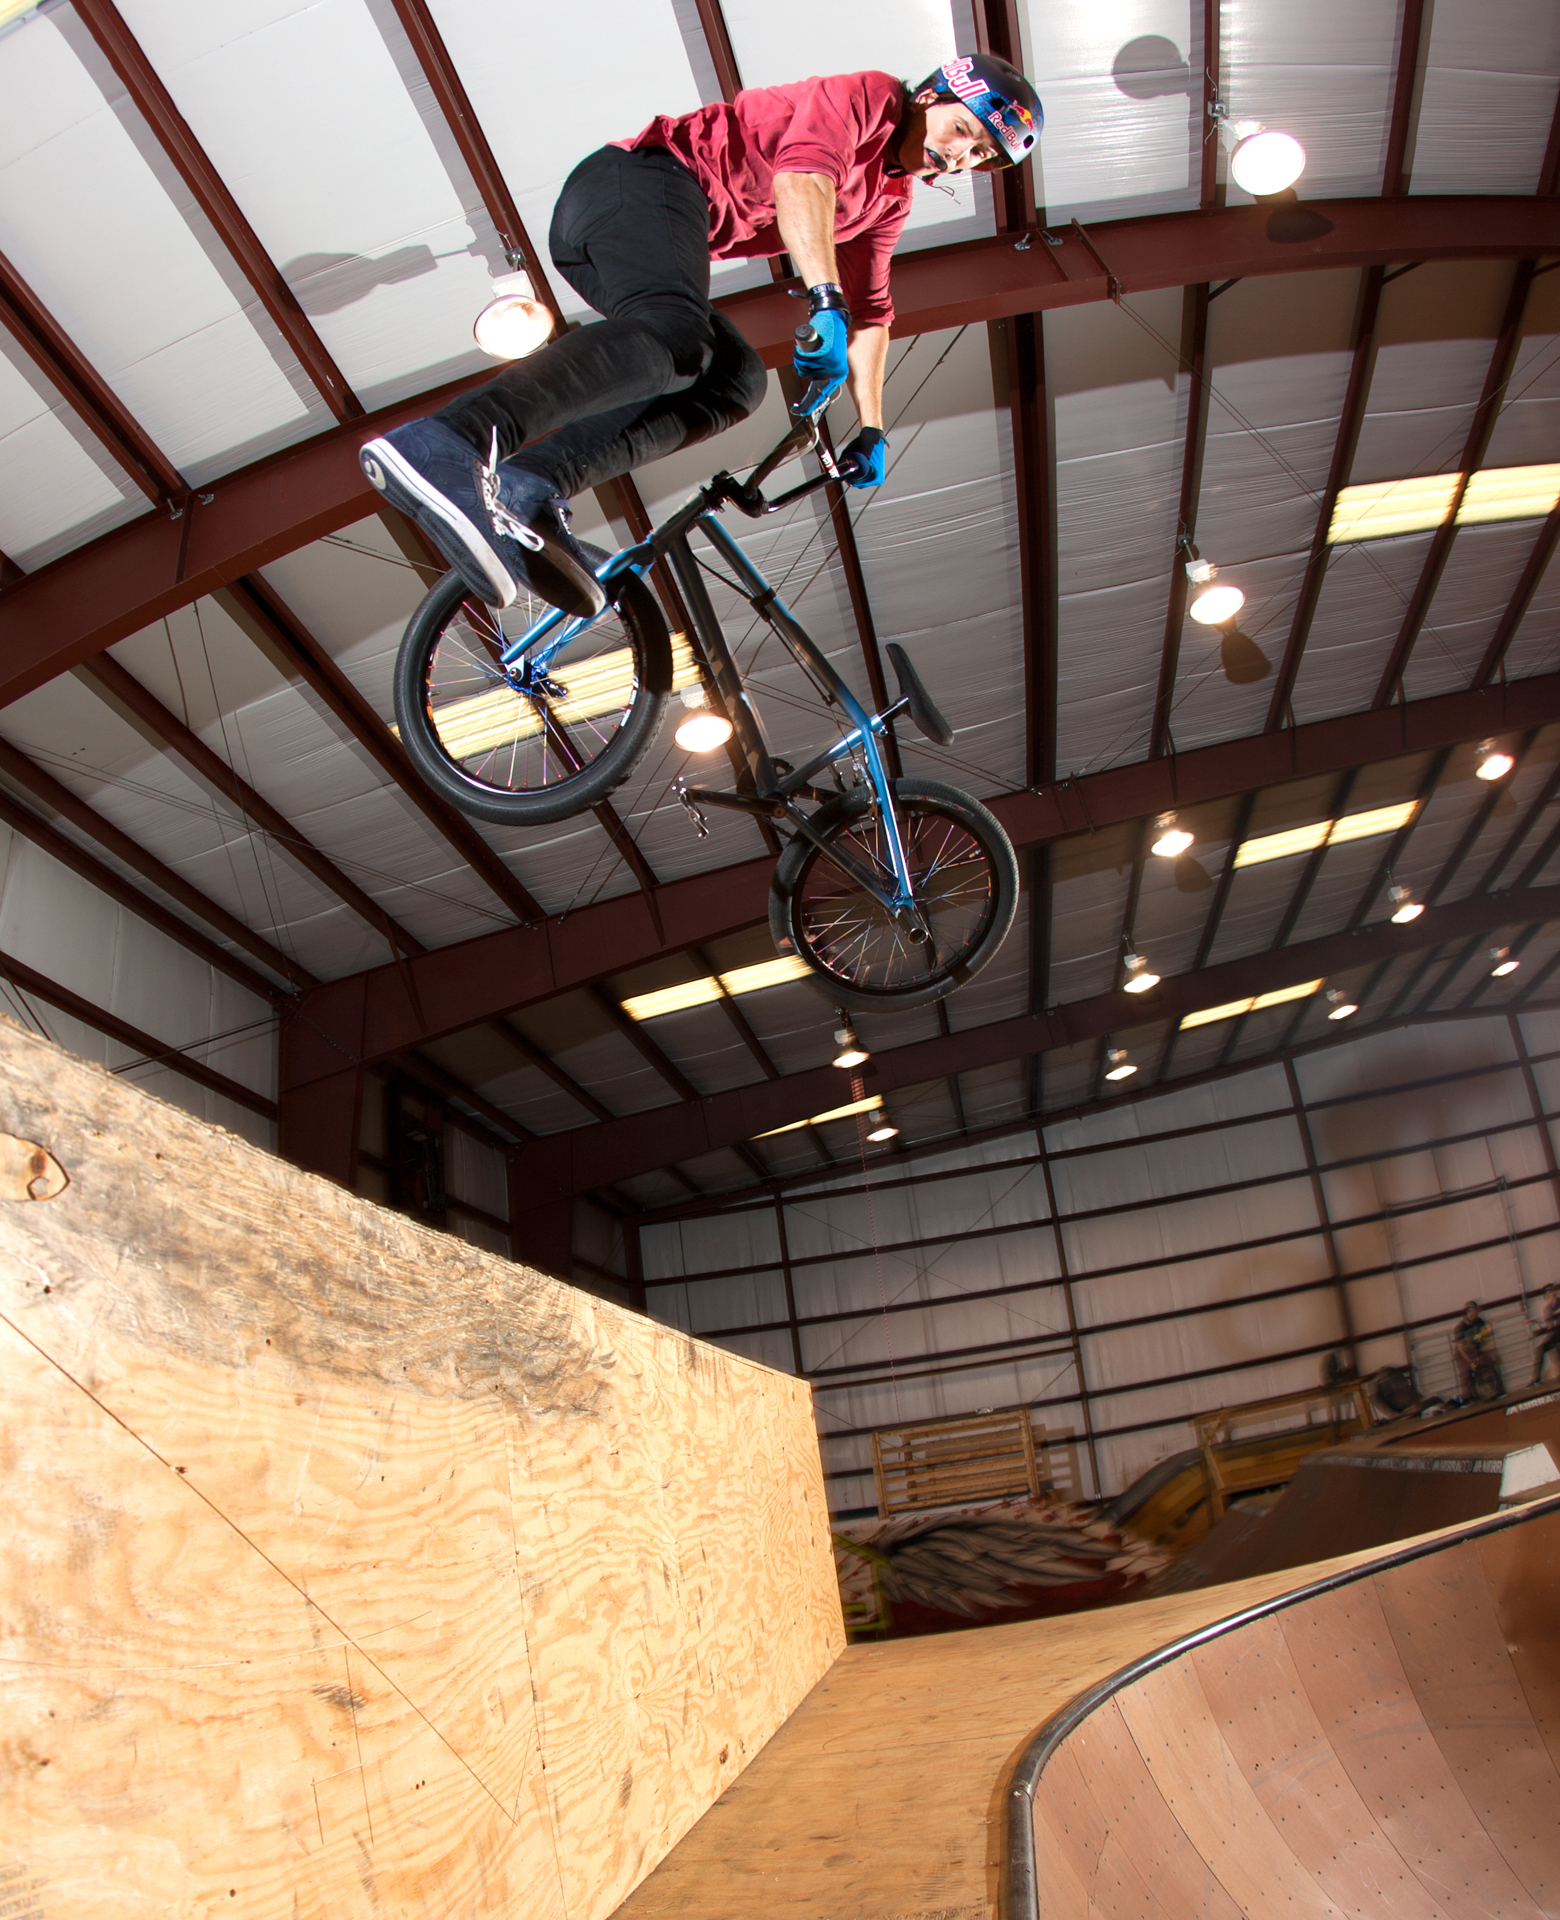 Dhers, 270 downside tailwhip